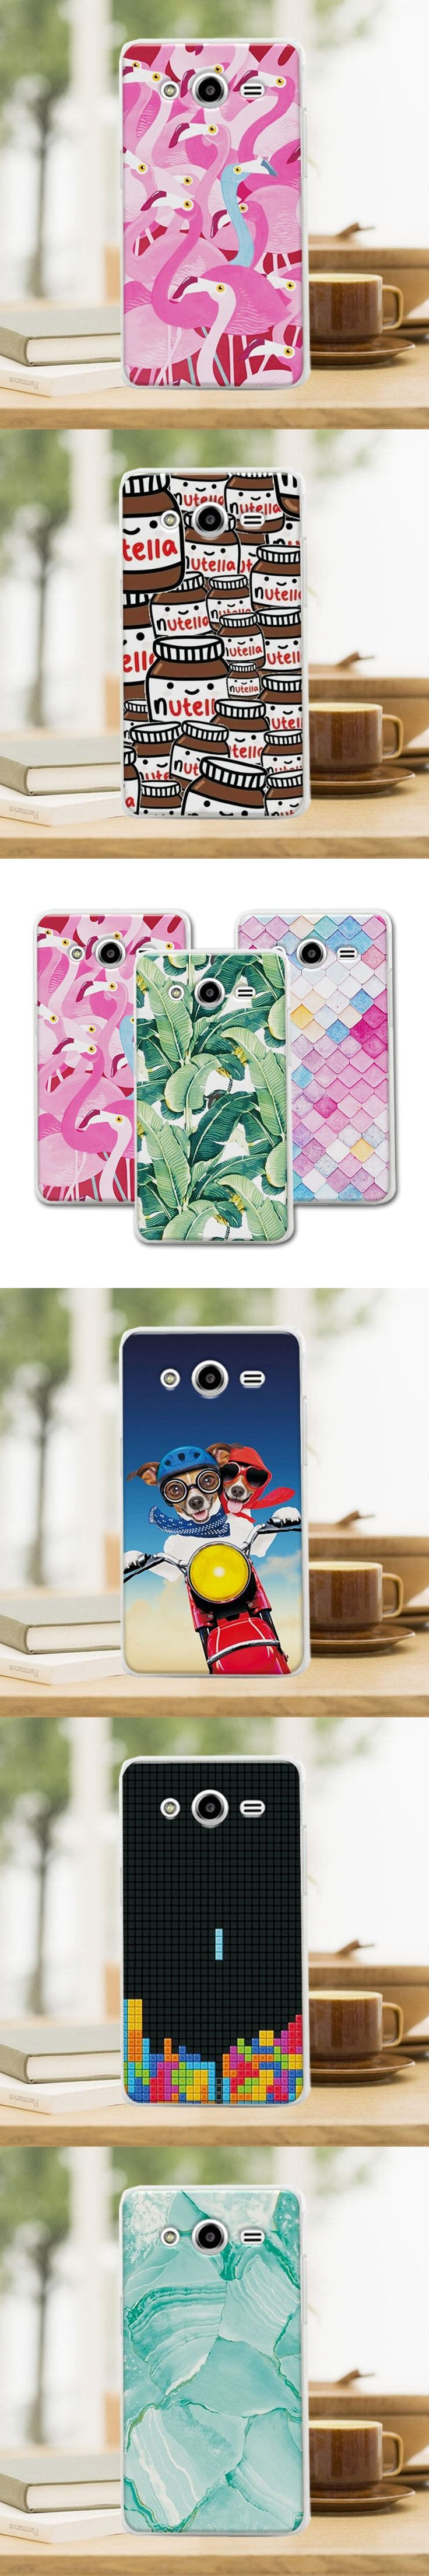 Mermaid Newest Flamingo Cute Phone Case For Samsung Galaxy Core 2 G355H SM-G355H Case Cover For Samsung G355H 4.5 inch+Free Gift